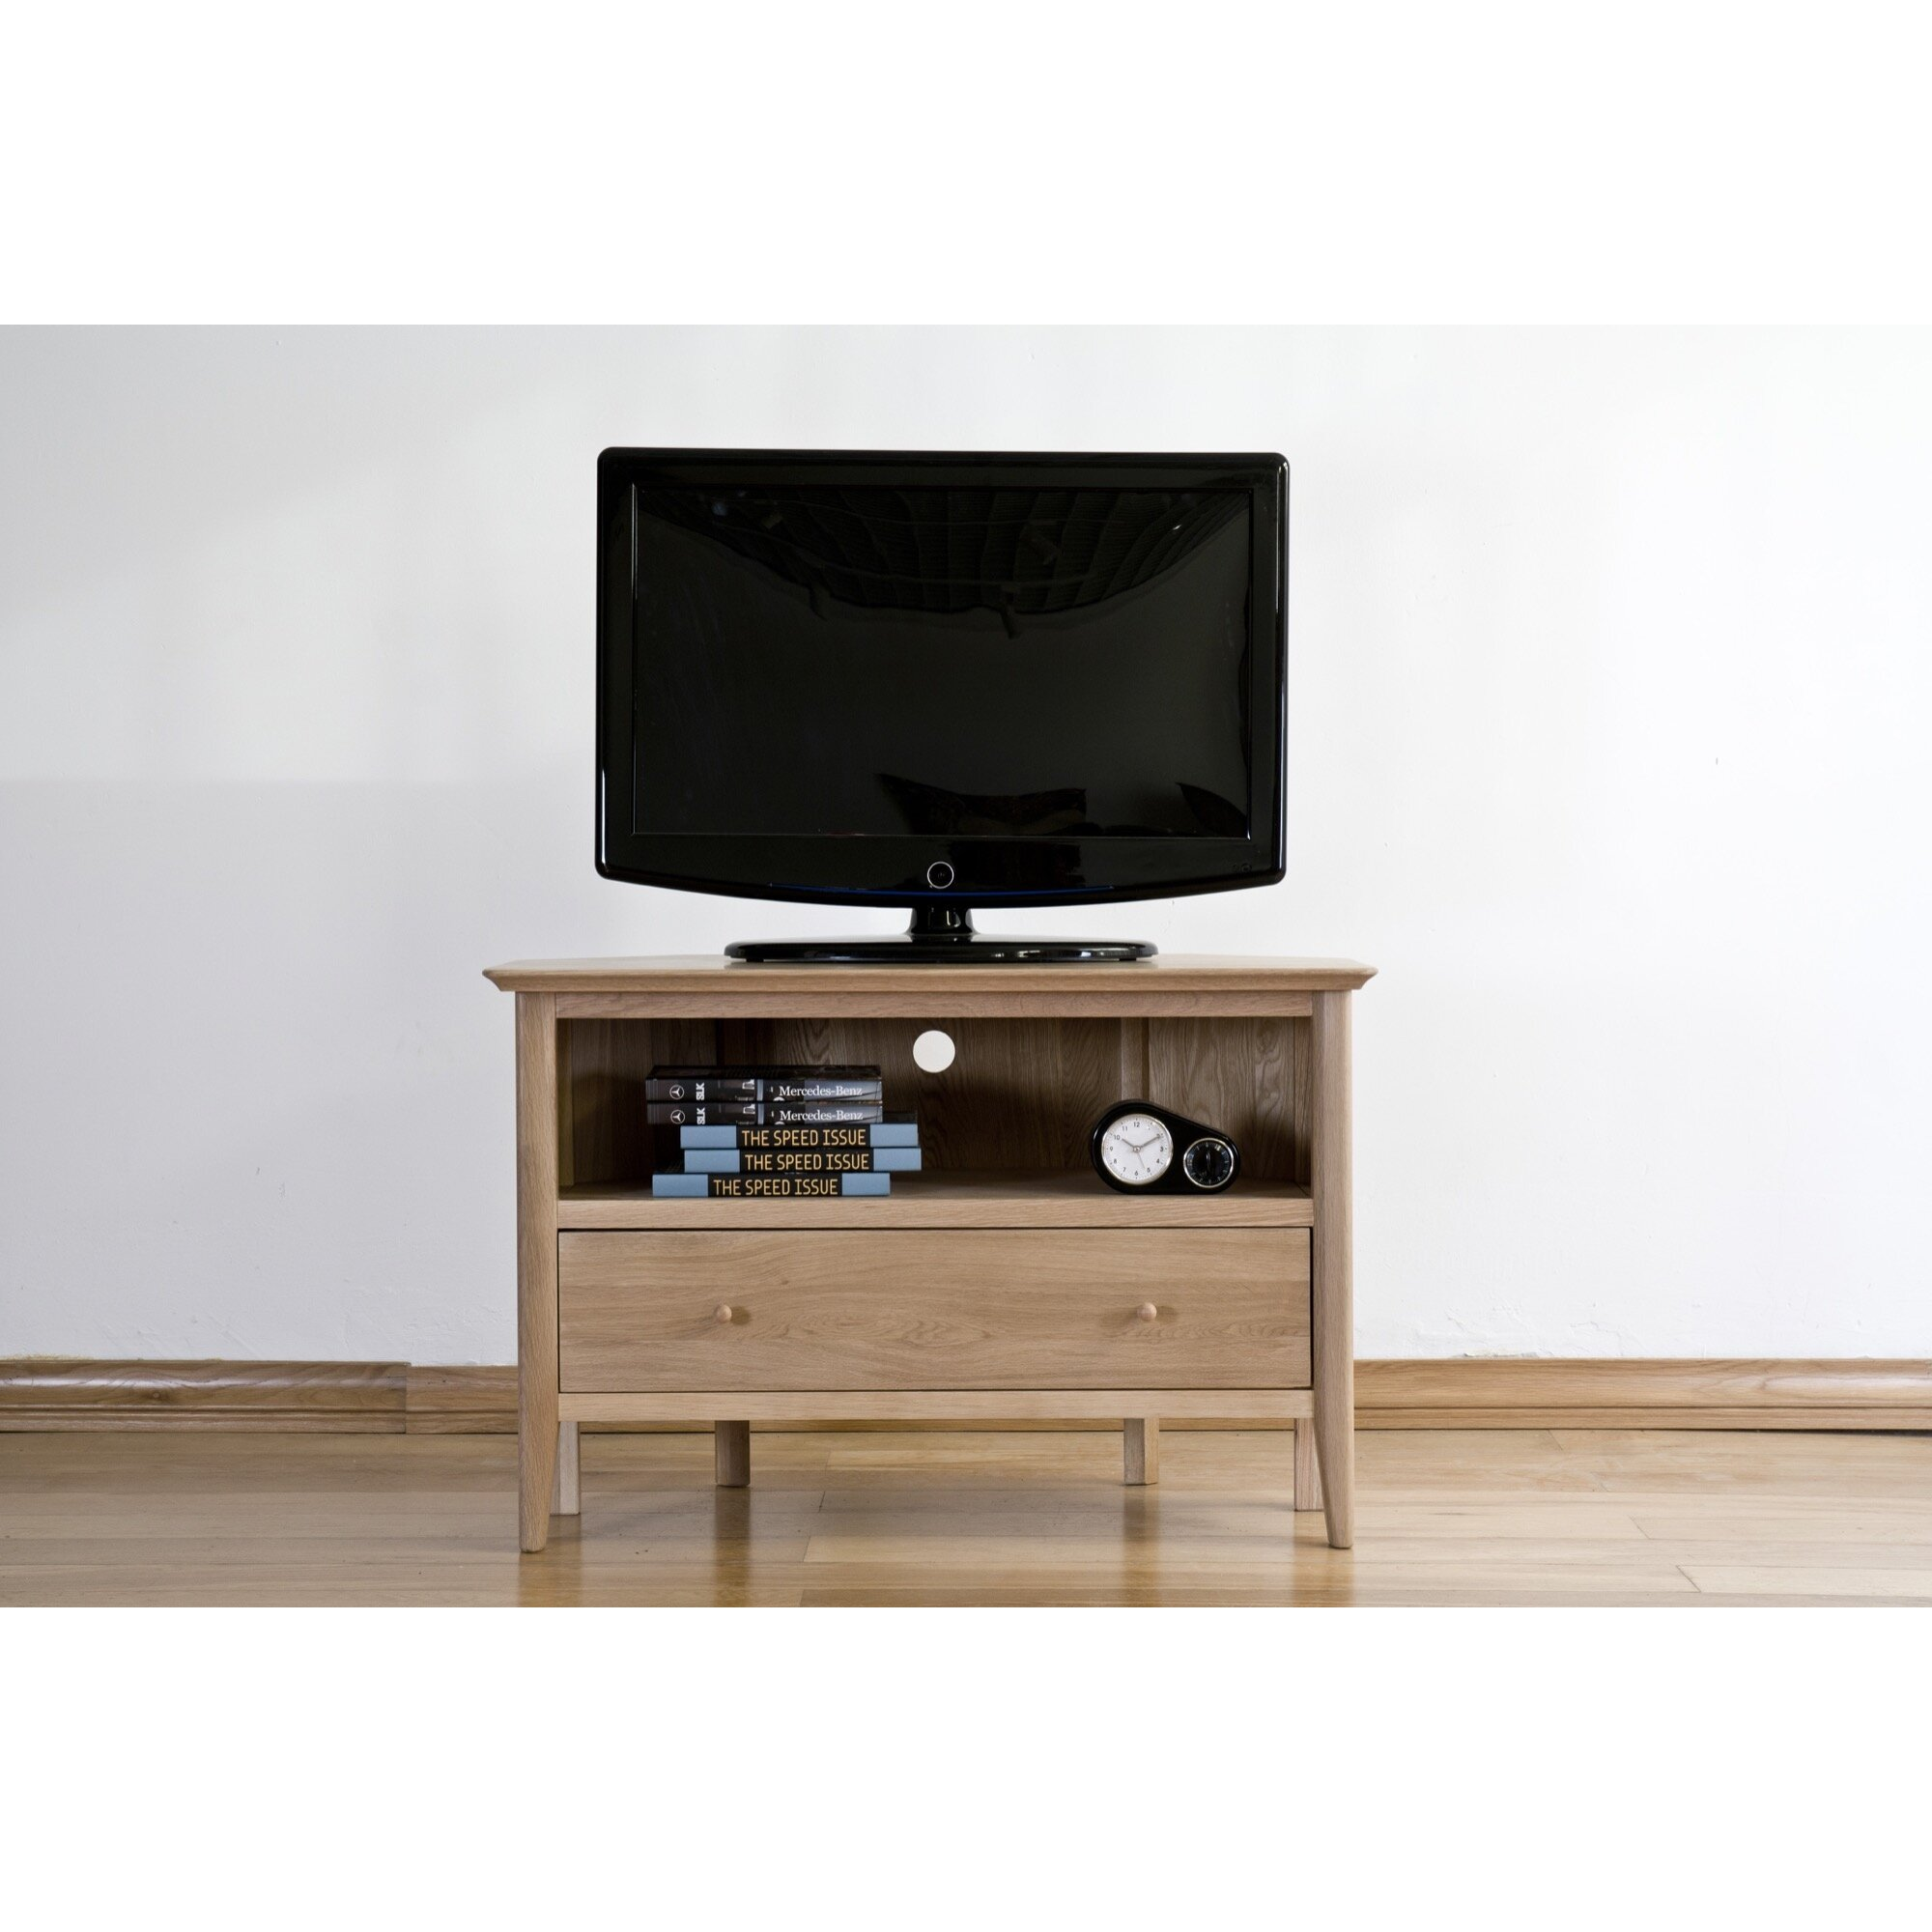 "Homestead Living Tv Stand For Tvs Up To 38"" & Reviews. Kitchen Pantry Ideas Small Kitchens. White Sparkle Kitchen Worktop. White Kitchen Cabinet Doors For Sale. Ana White Play Kitchen. Kitchen Island For Sale Used. Painting Kitchen Cabinets Color Ideas. White Glitter Kitchen Worktop. Small Kitchen Island Ideas"